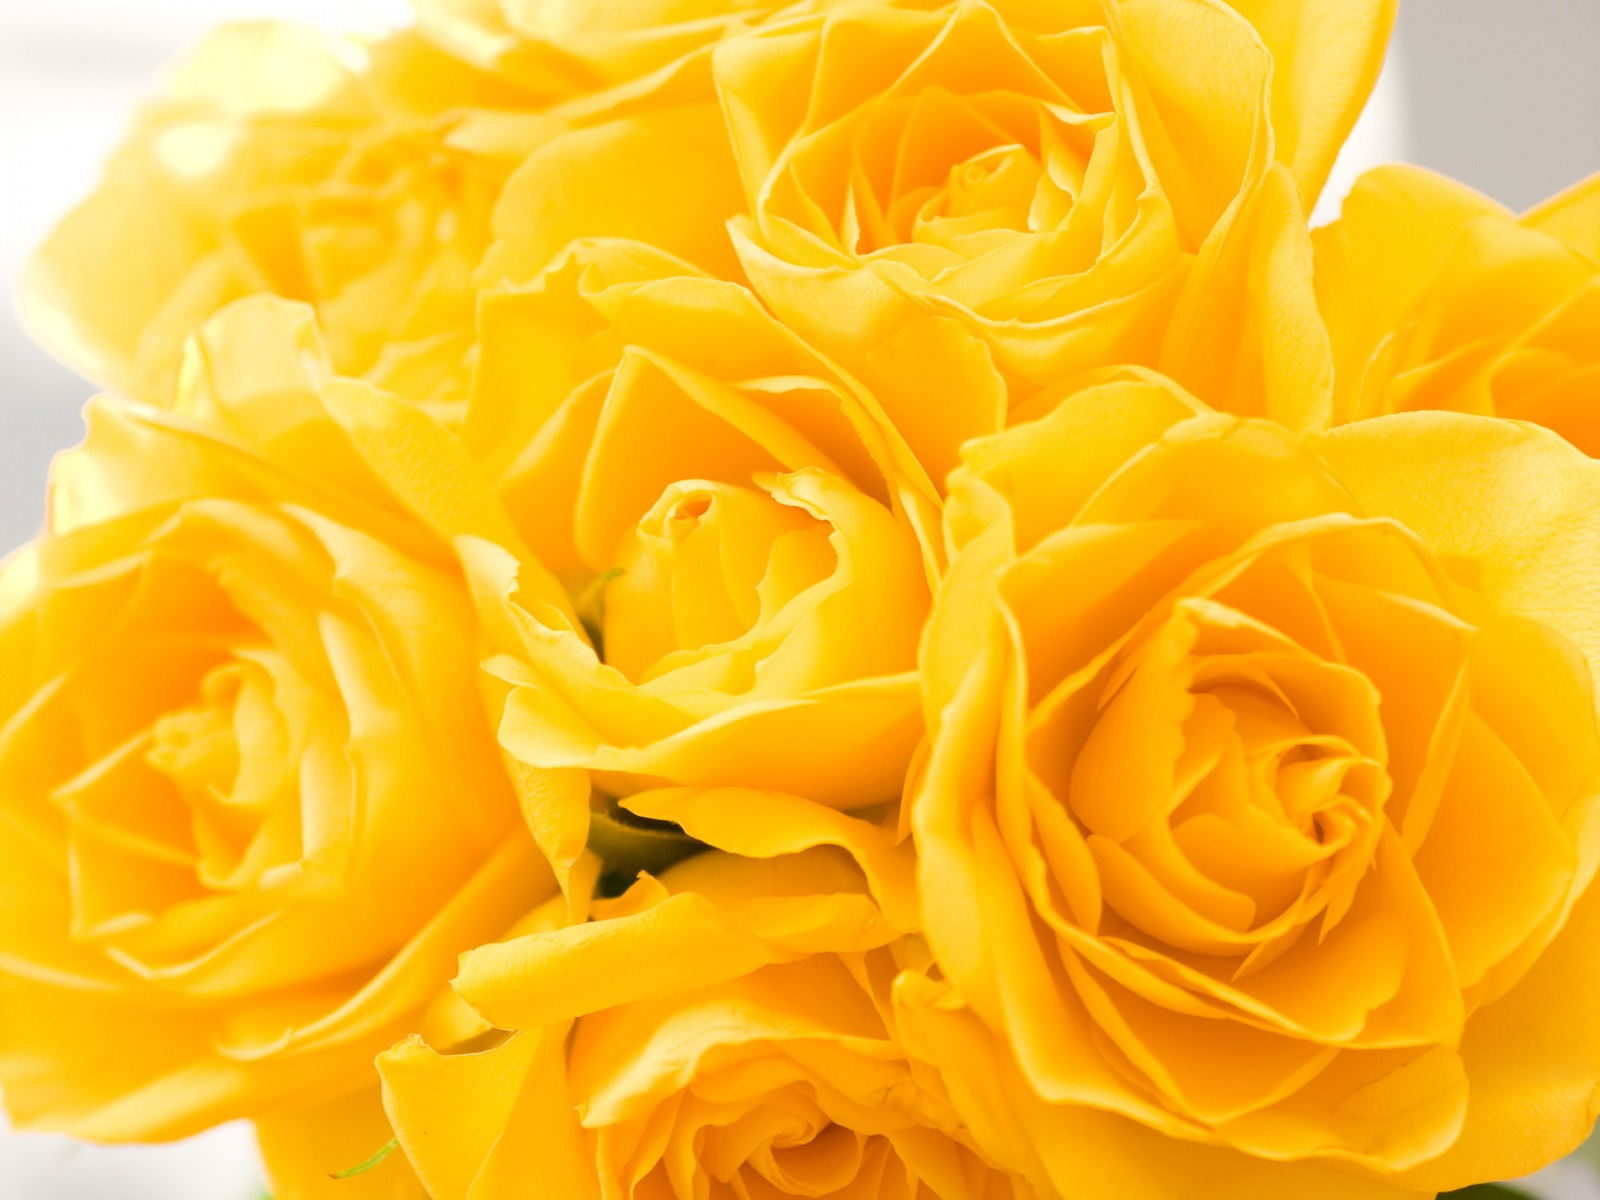 Yellow Roses Wallpaper 1600x1200 66798